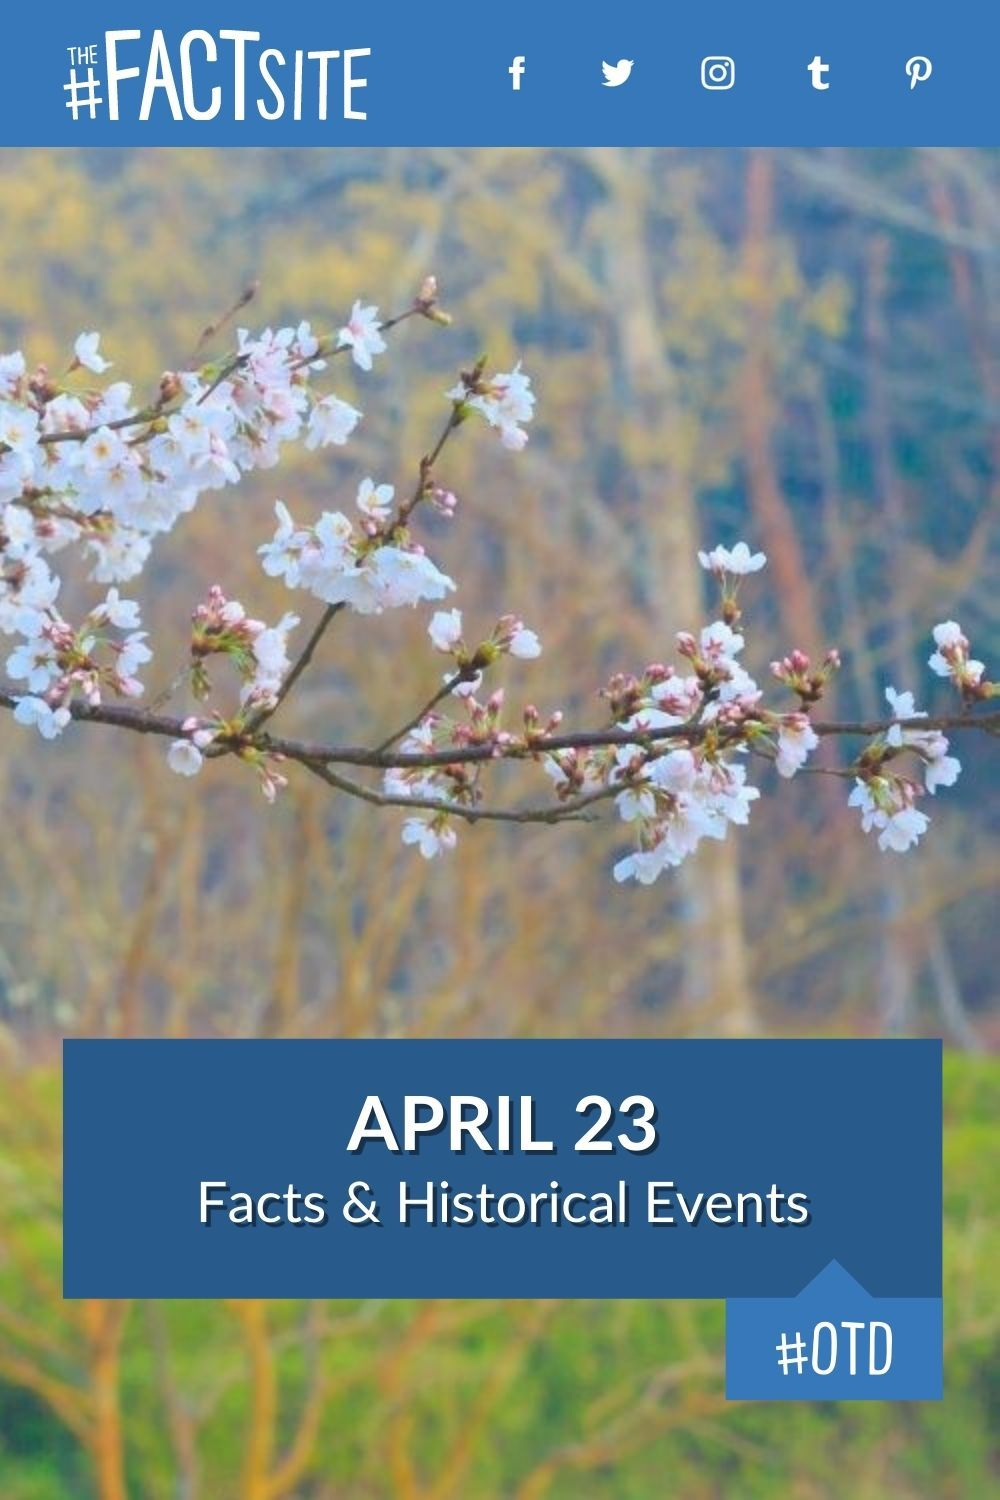 Facts & Historic Events That Happened on April 23